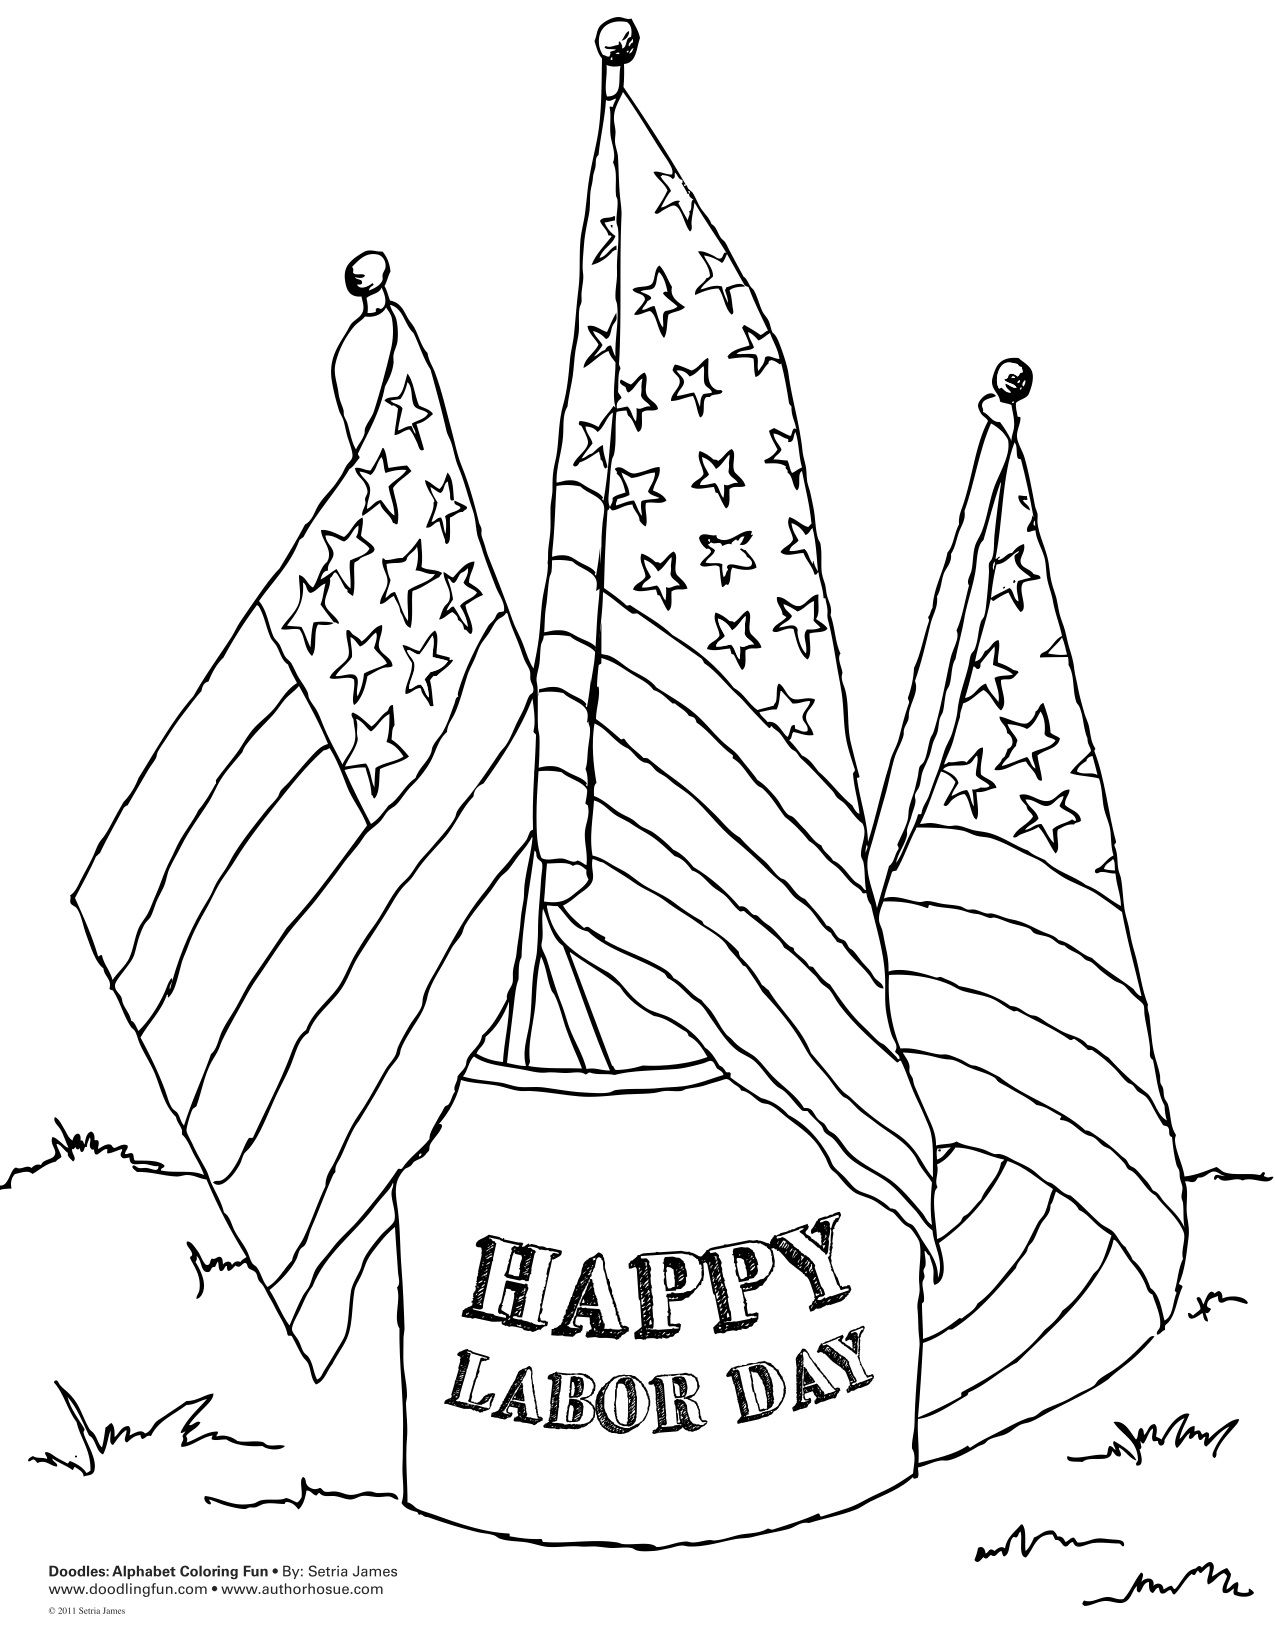 labor day coloring pages | Labor Day is a great holiday to relax ...